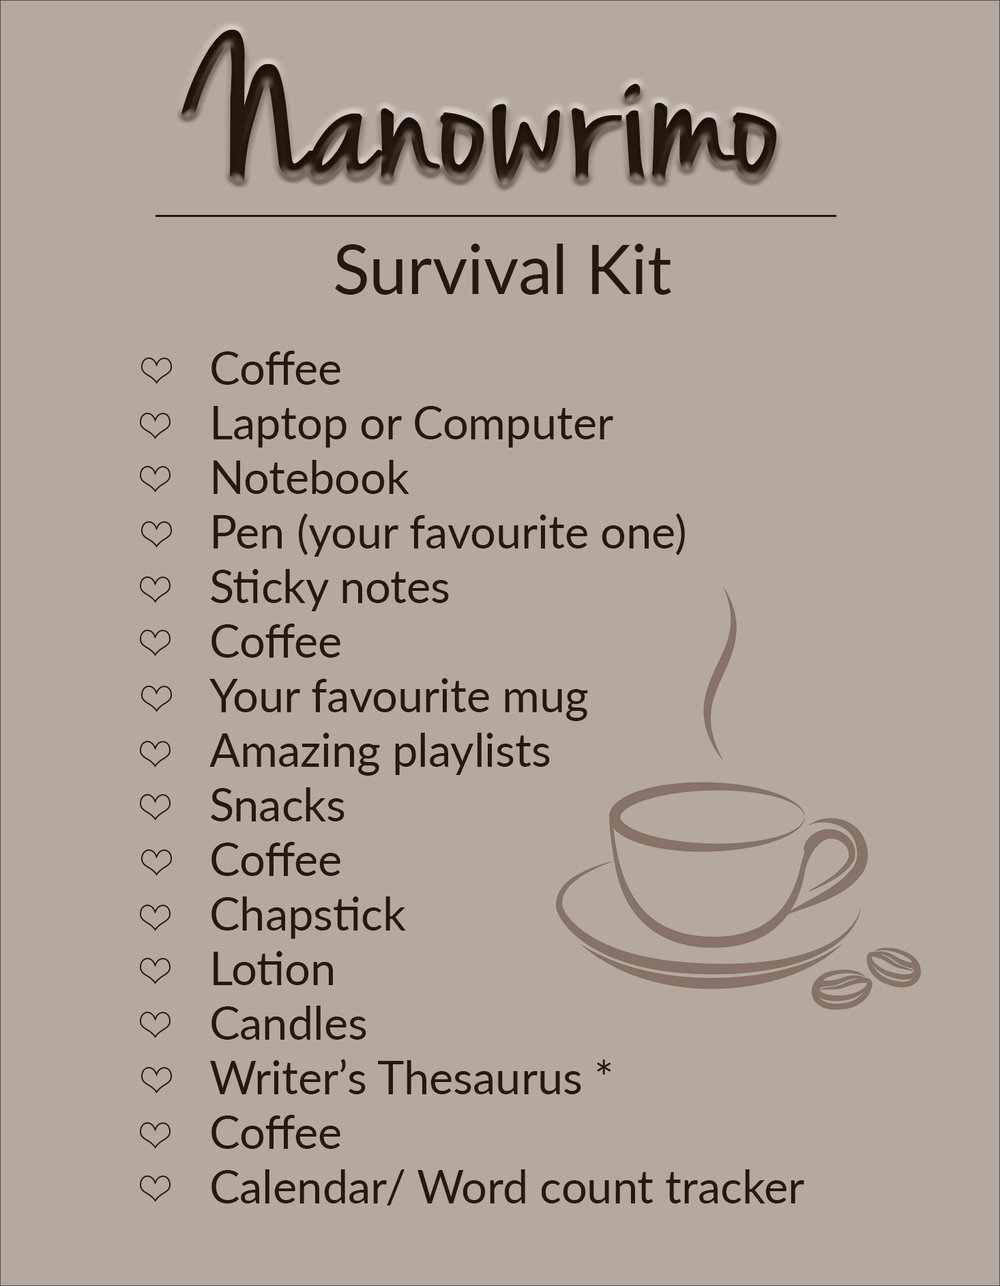 Survival Kit.jpg